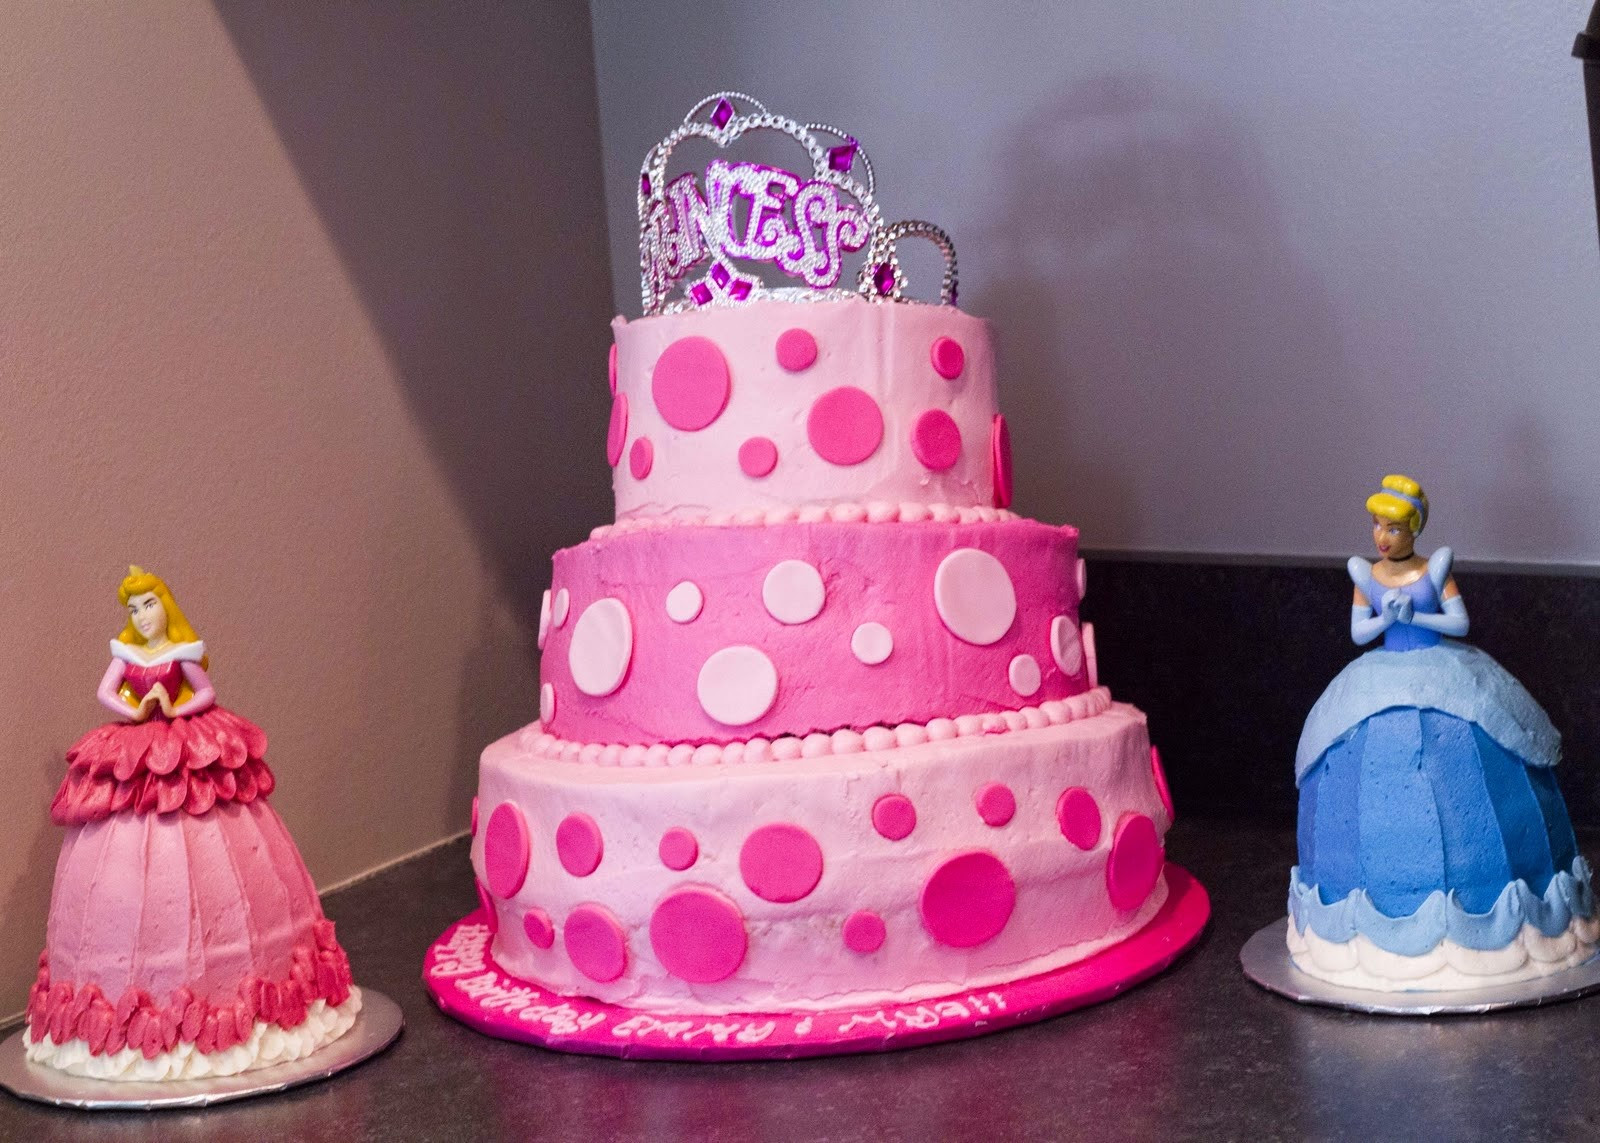 Best ideas about Birthday Cake Ideas For Girls . Save or Pin Top 77 s Cakes For Birthday Girls Now.